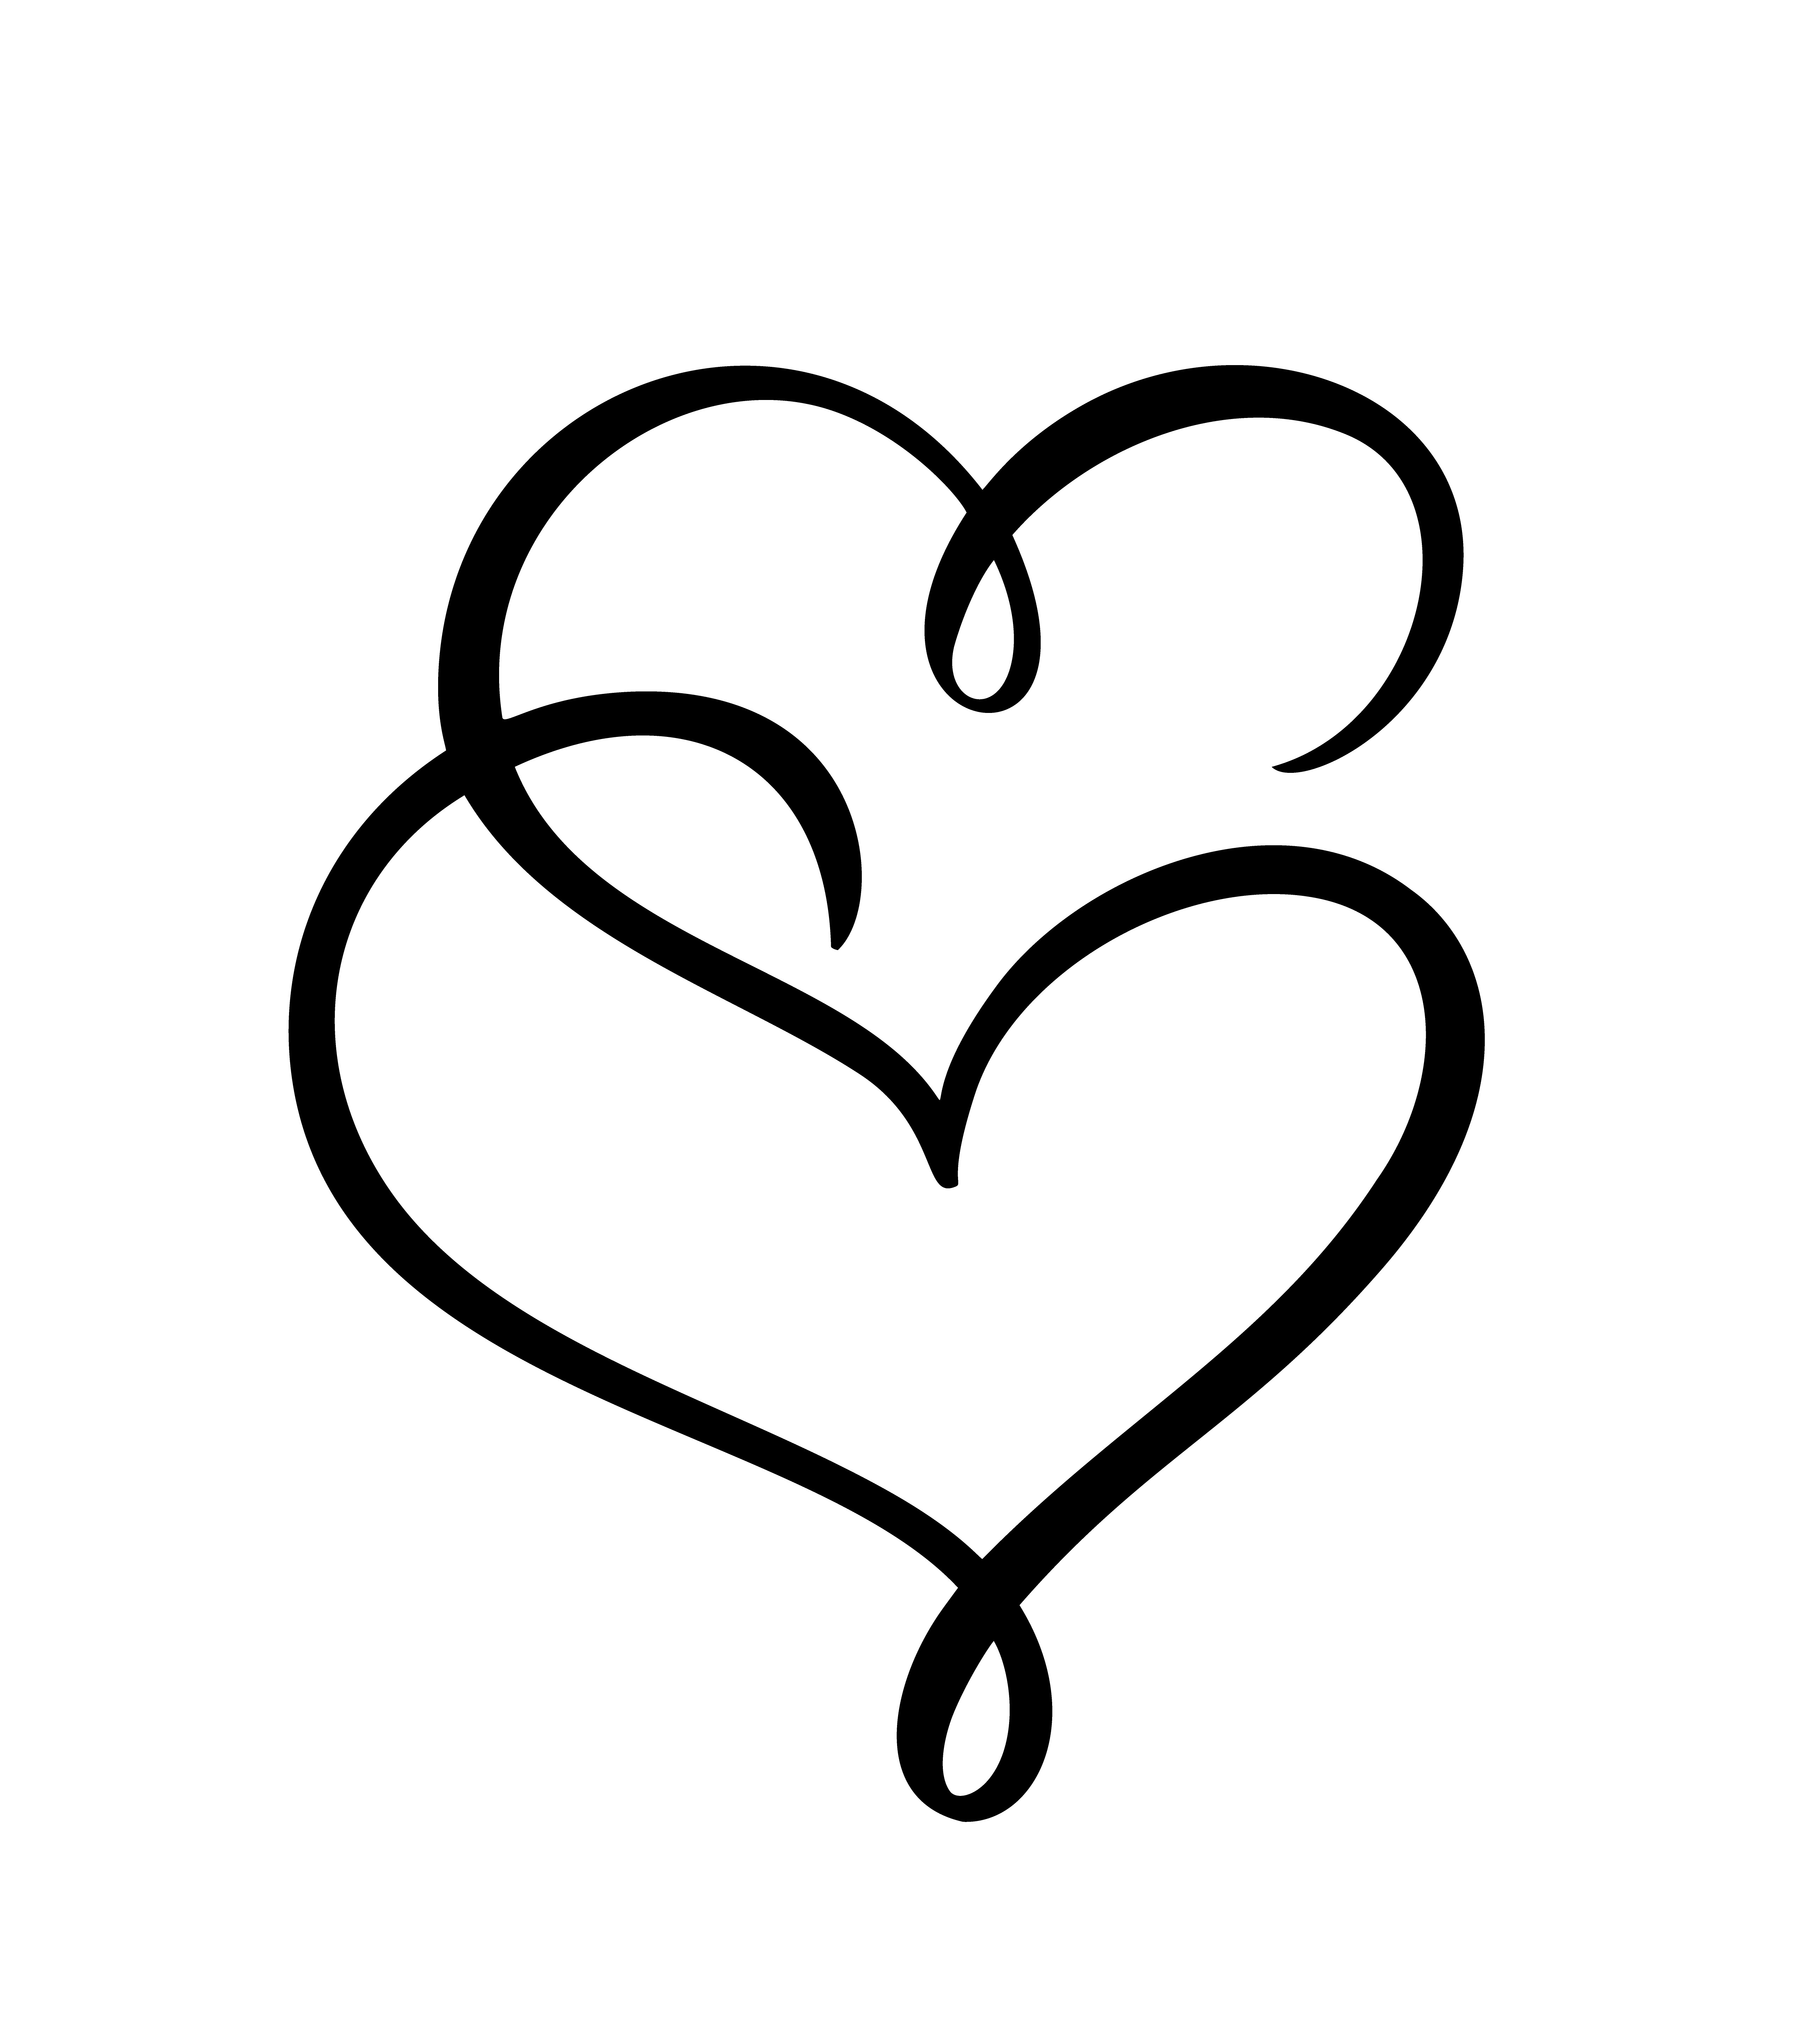 Two Love Heart Signs Romantic Vector Illustration